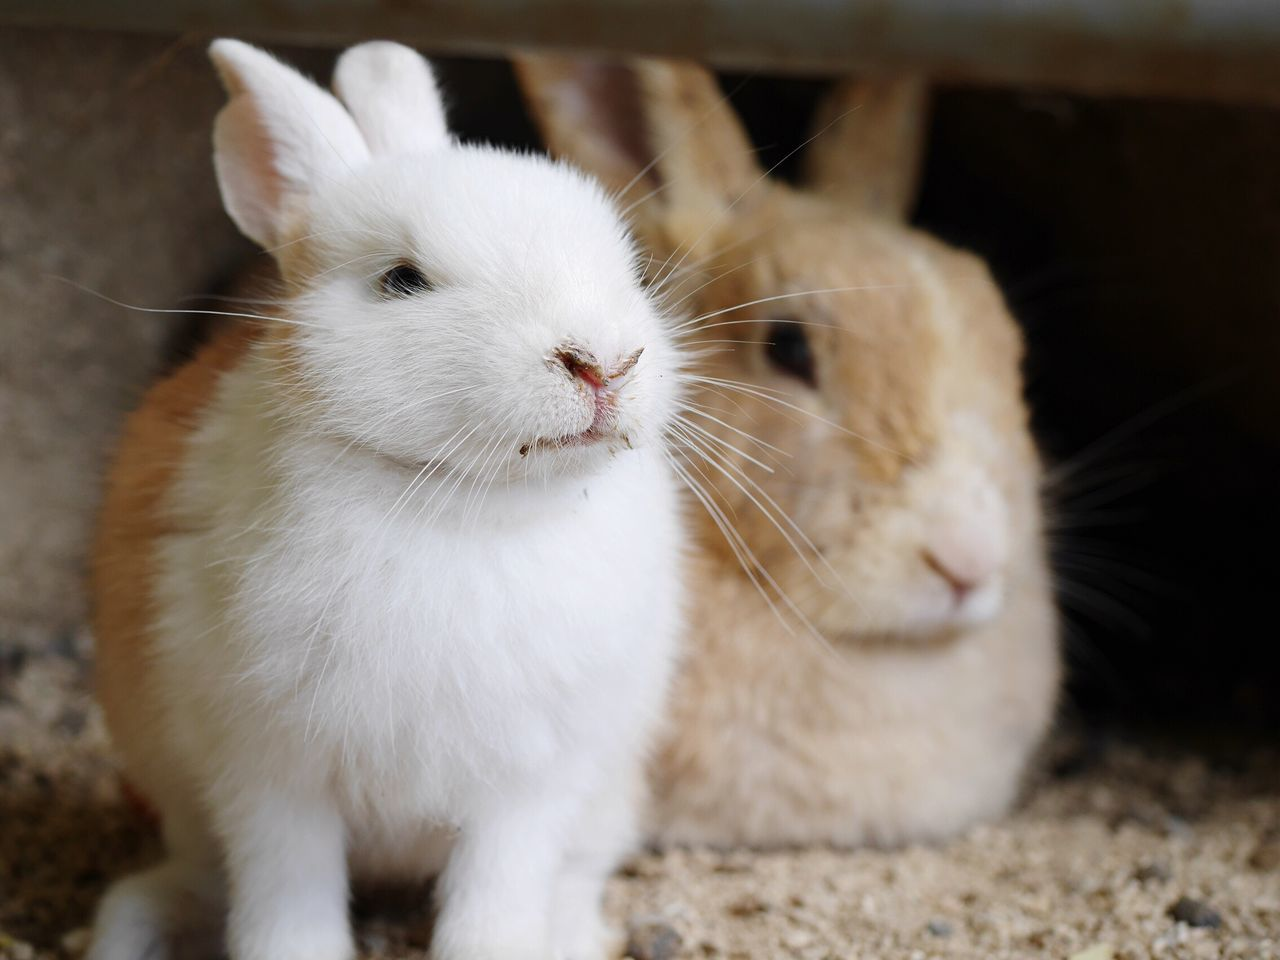 Nature Photography Rabbits 🐇 Rabbits Rabbit Japan Photography Rabbit ❤️ Animal Animal Themes Animals In The Wild Animals Animal Wildlife Pretty Parent And Child